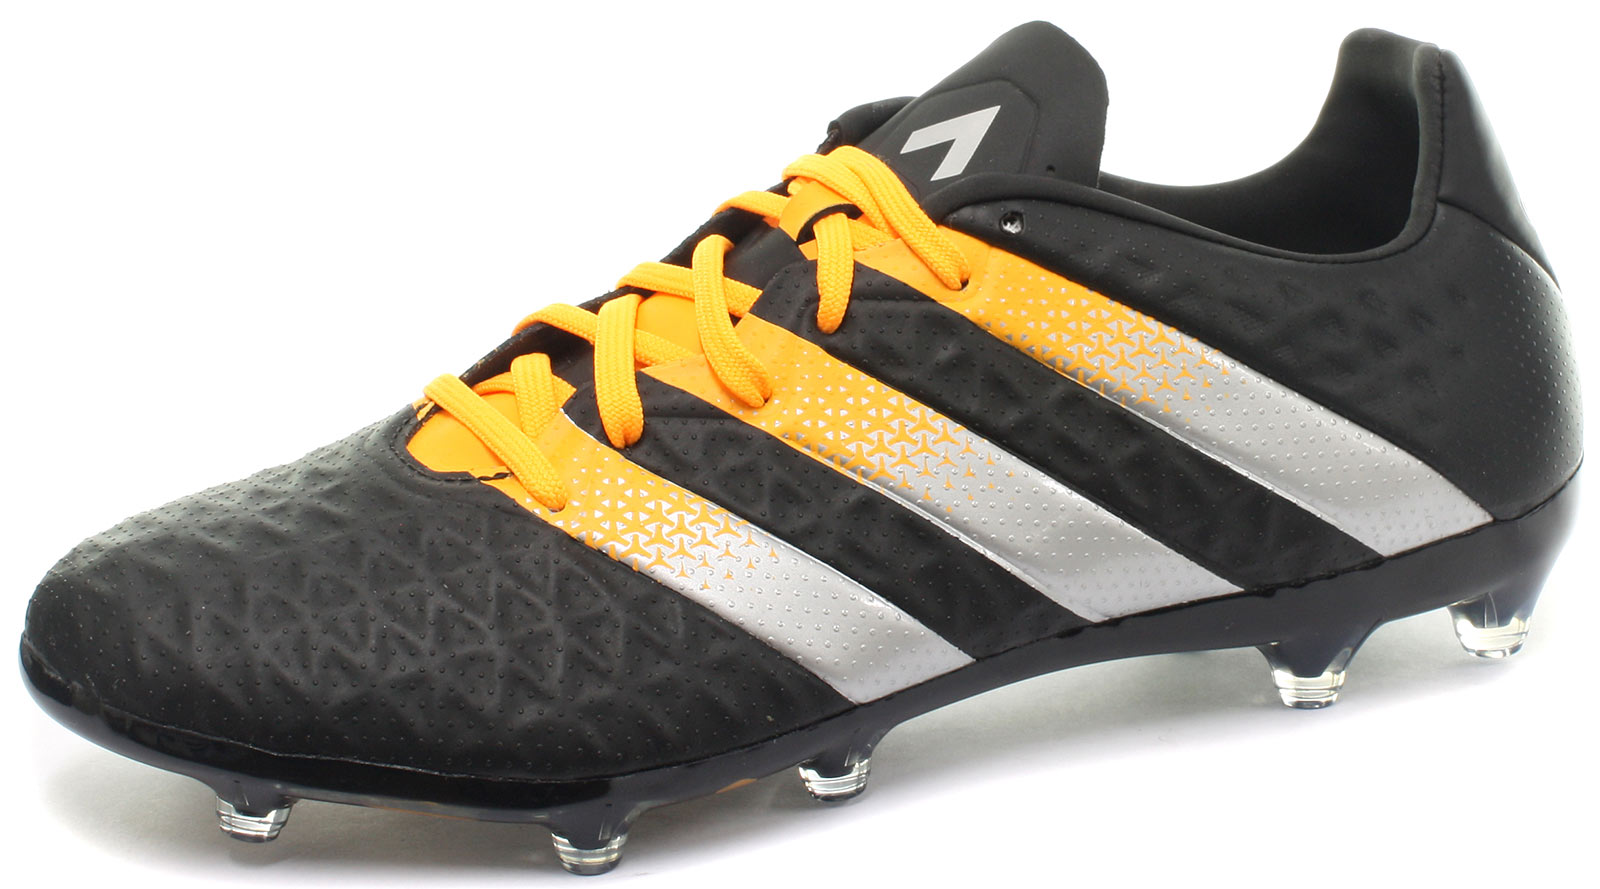 buy online ee925 bf2c8 crampon adidas ace 16.2. NOUVEAU ADIDAS ACE 16.2 Fg Ag Chaussures Foot  Hommes ...